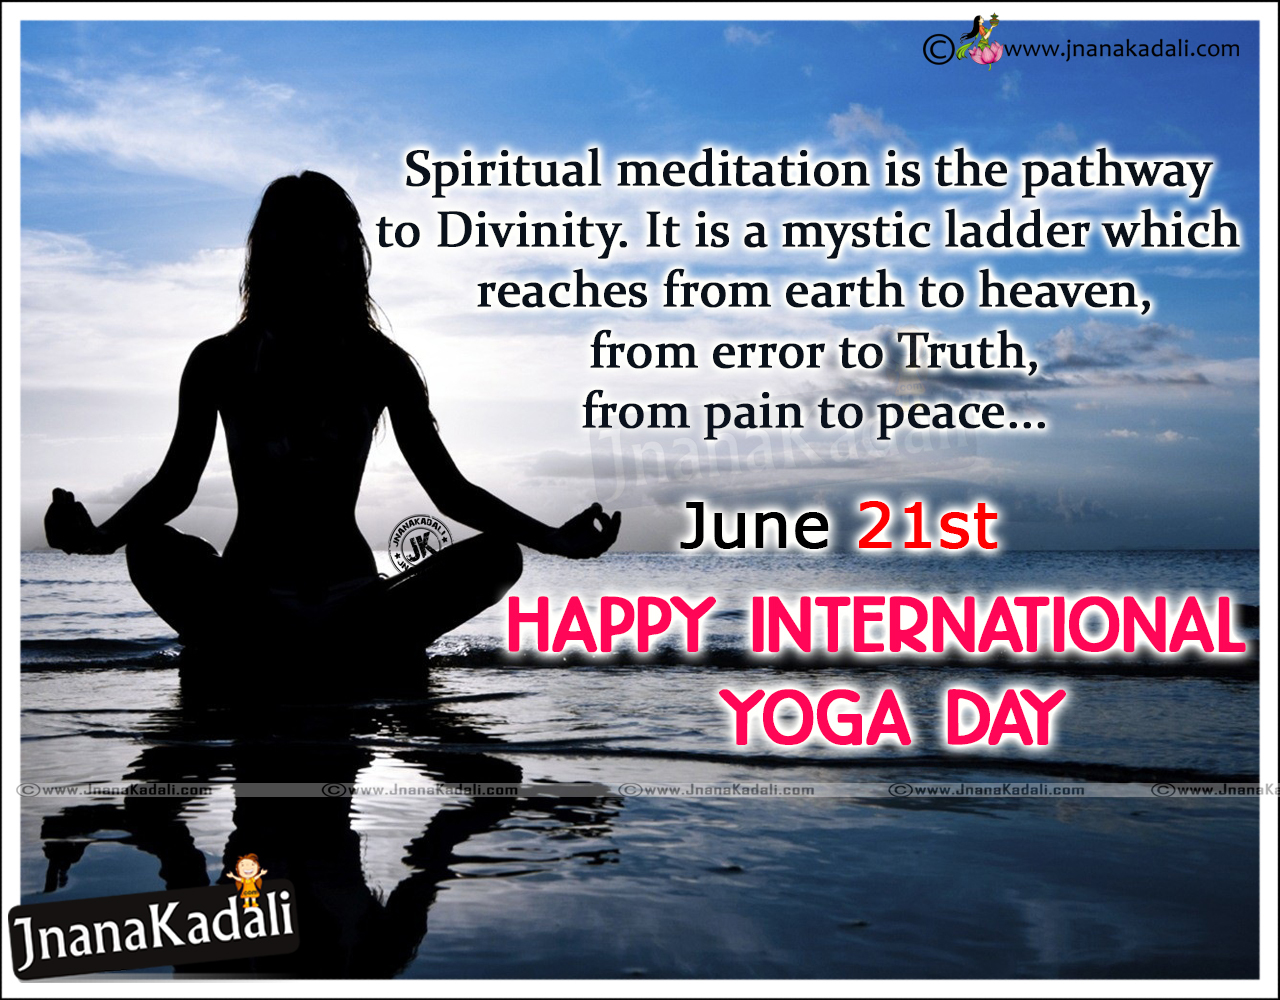 Yoga Diwas 2016 Wishes In English Language Jnana Kadalicom